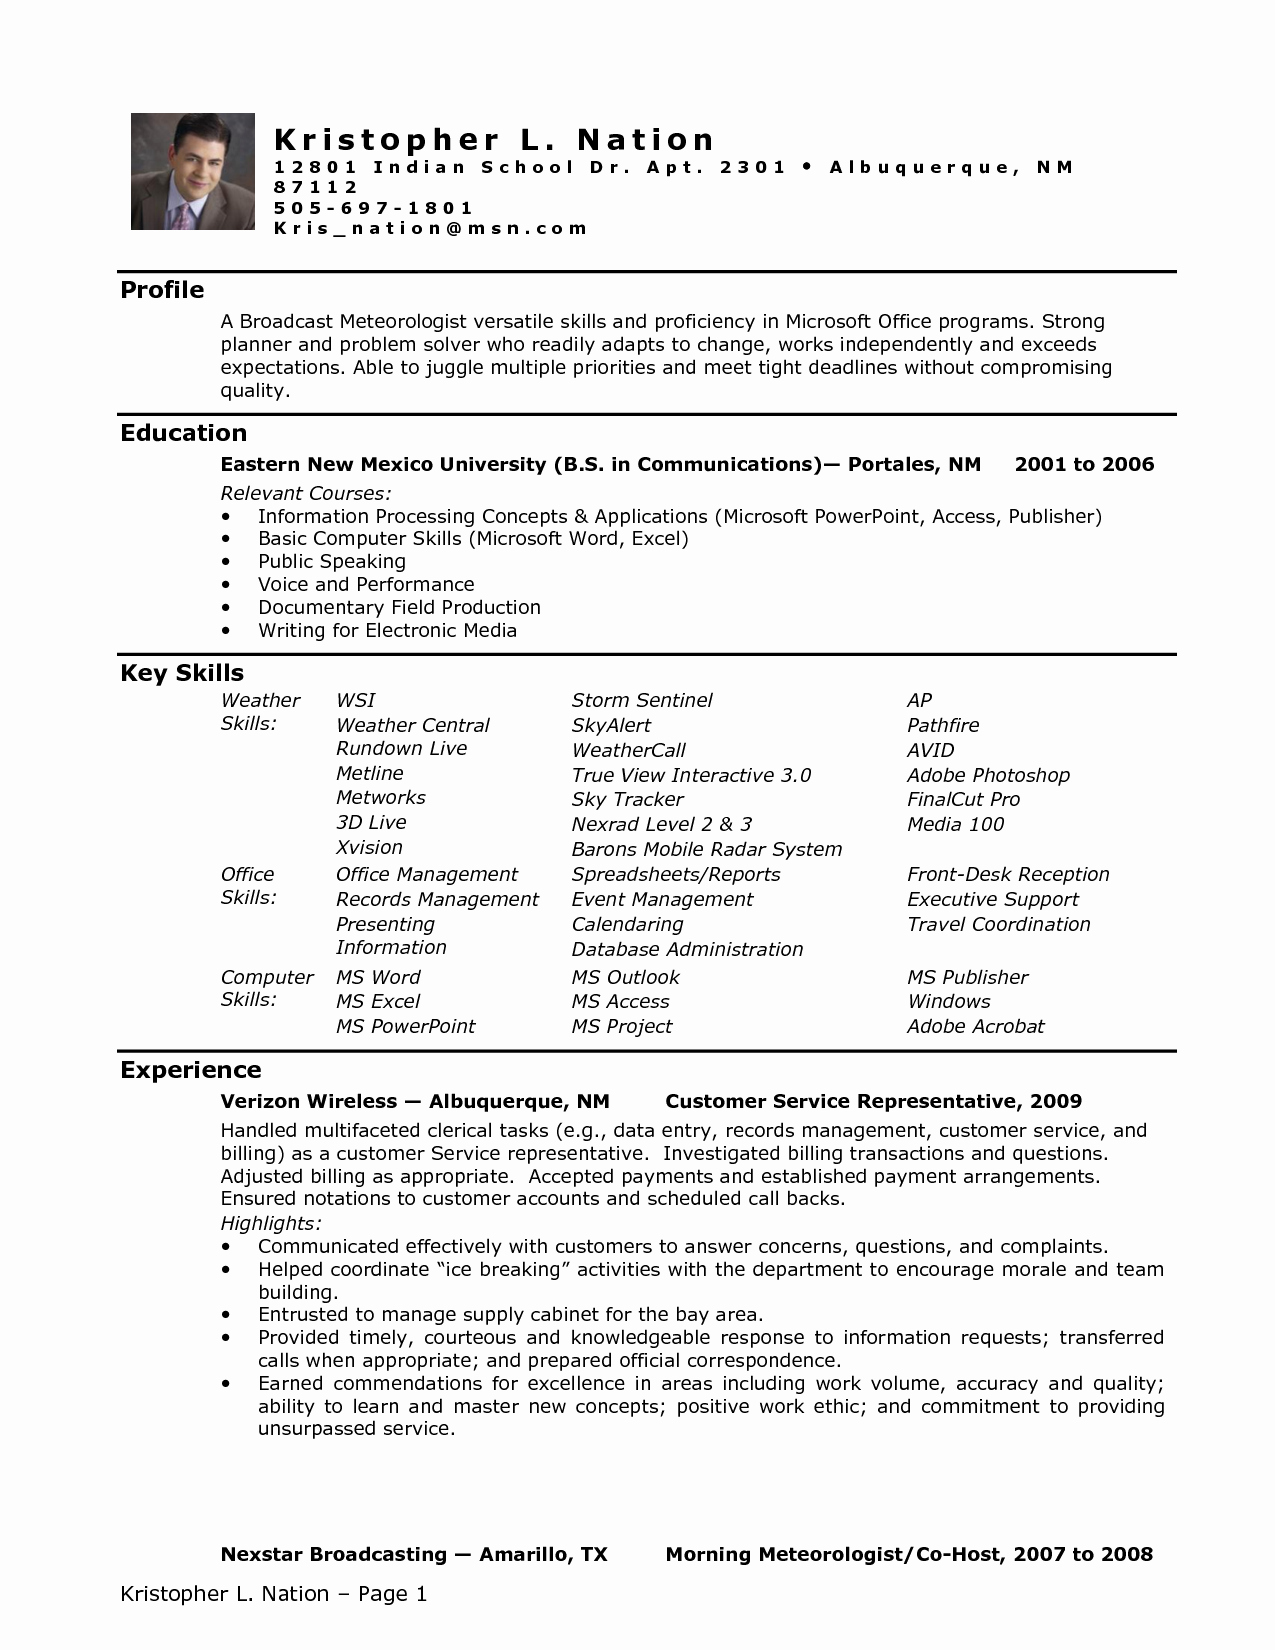 Medical Administrative assistant Resume Unique Resume Templates Entry Level Rn Google Search Nursing